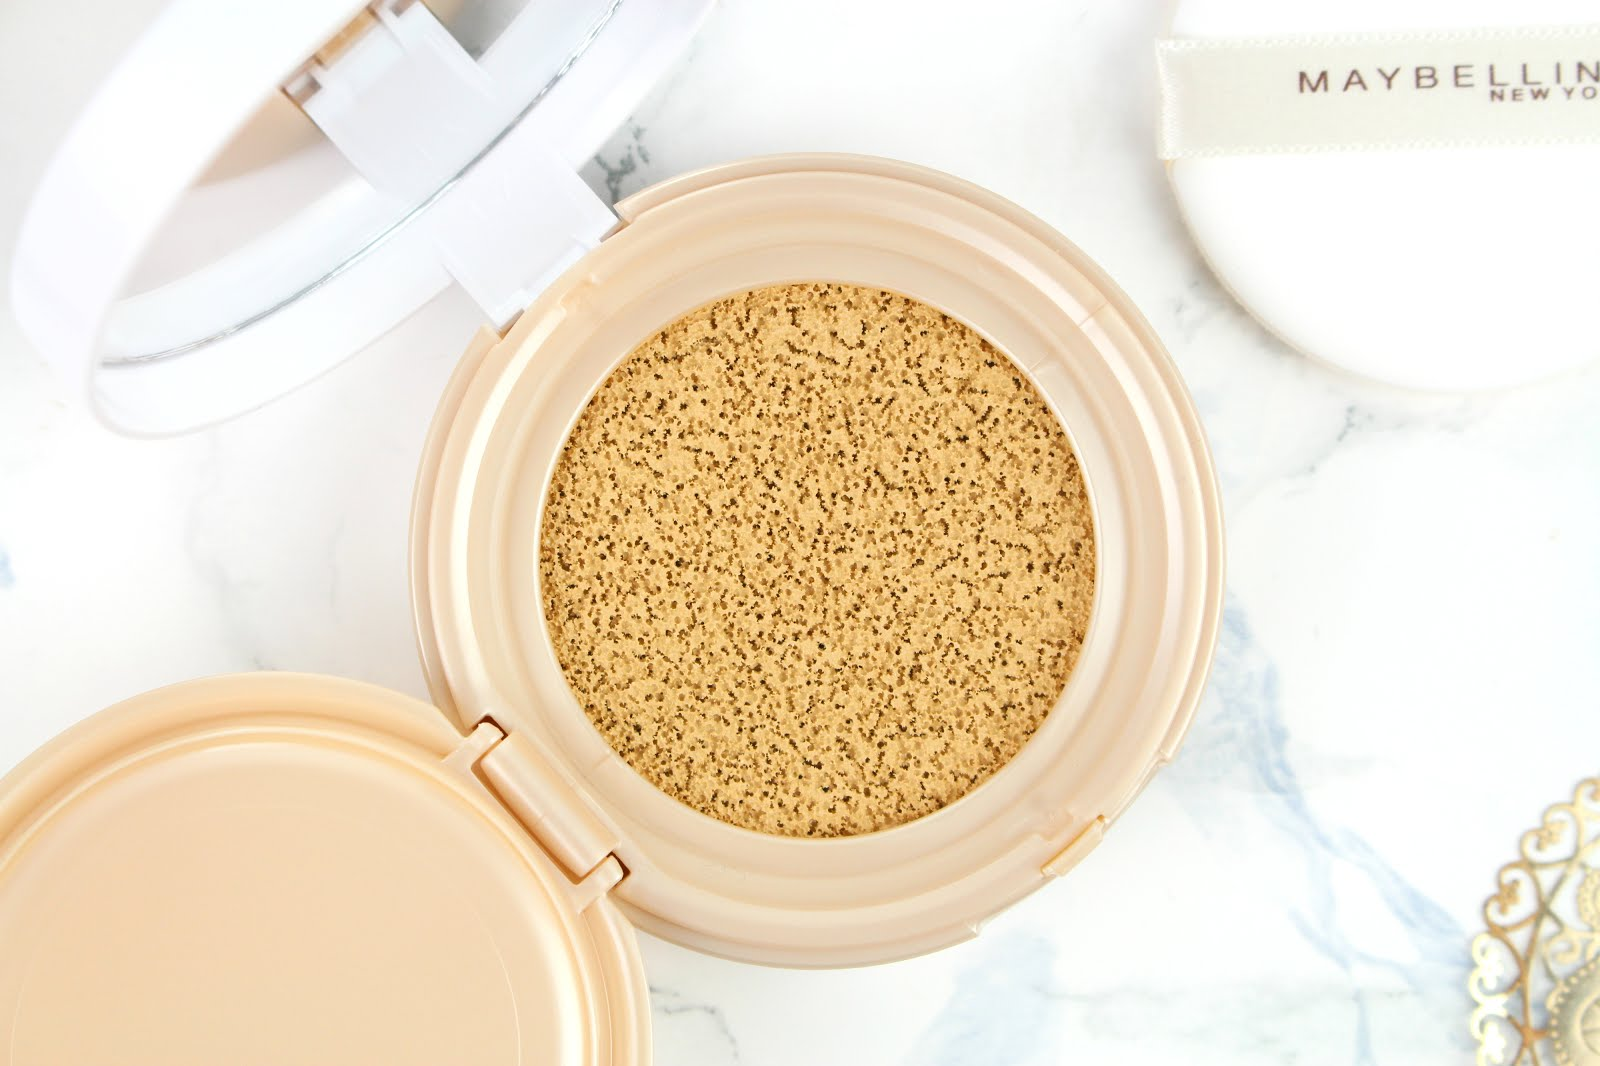 maybelline dream cushion, maybelline dream cushion foundation, maybelline cushion, maybelline cushion foundation, cushion foundation